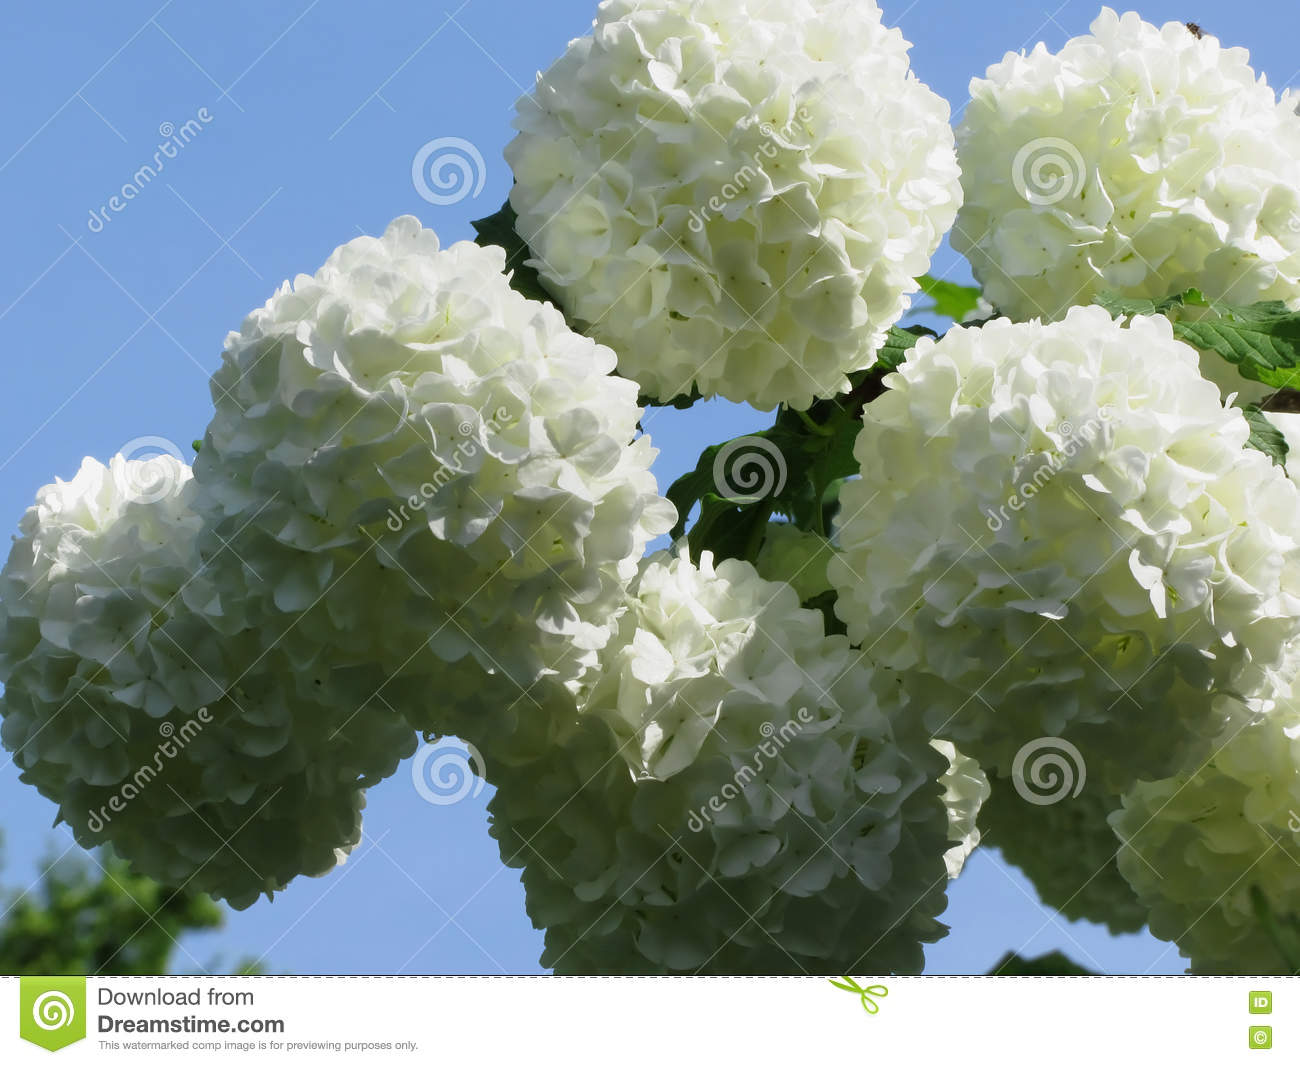 balls of white hydrangea flowers stock photo  image, Natural flower